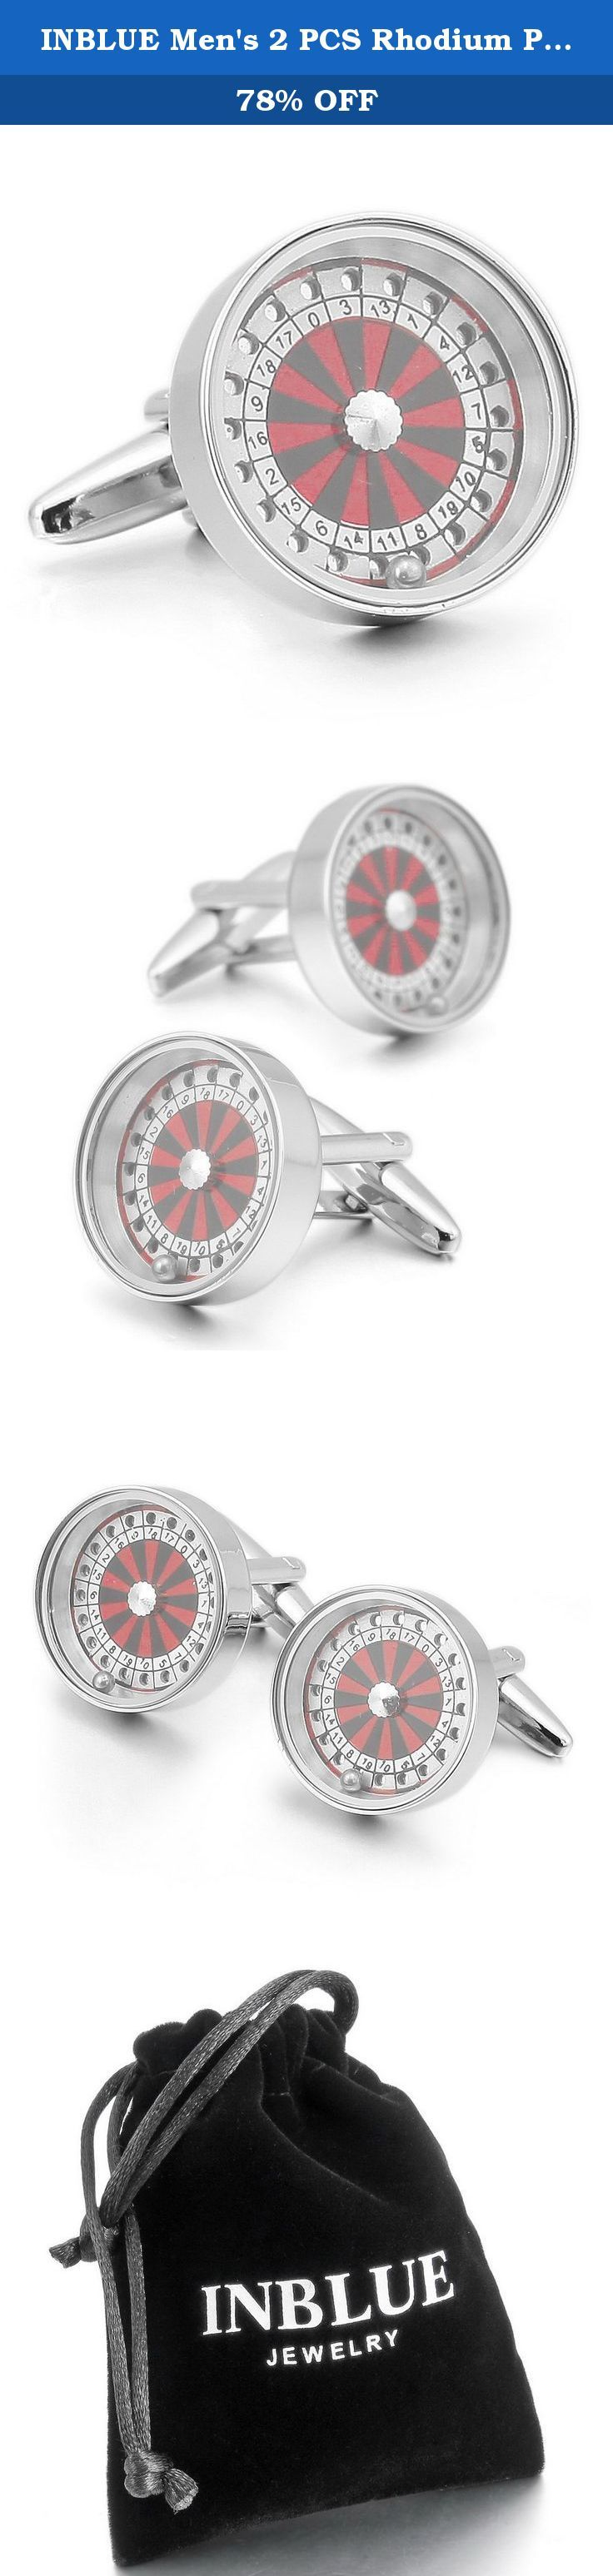 INBLUE Men's 2 PCS Rhodium Plated Cufflinks Silver Tone Roulette Wheel Shirt Wedding Business 1 Pair Set. INBLUE - High quality Jewelry Discover the INBLUE Collection of jewelry. The selection of high-quality jewelry featured in the INBLUE Collection offers Great values at affordable Price, they mainly made of high quality Stainless Steel, Tungsten, Silver and Leather. Find a special gift for a loved one or a beautiful piece that complements your personal style with jewelry from the…